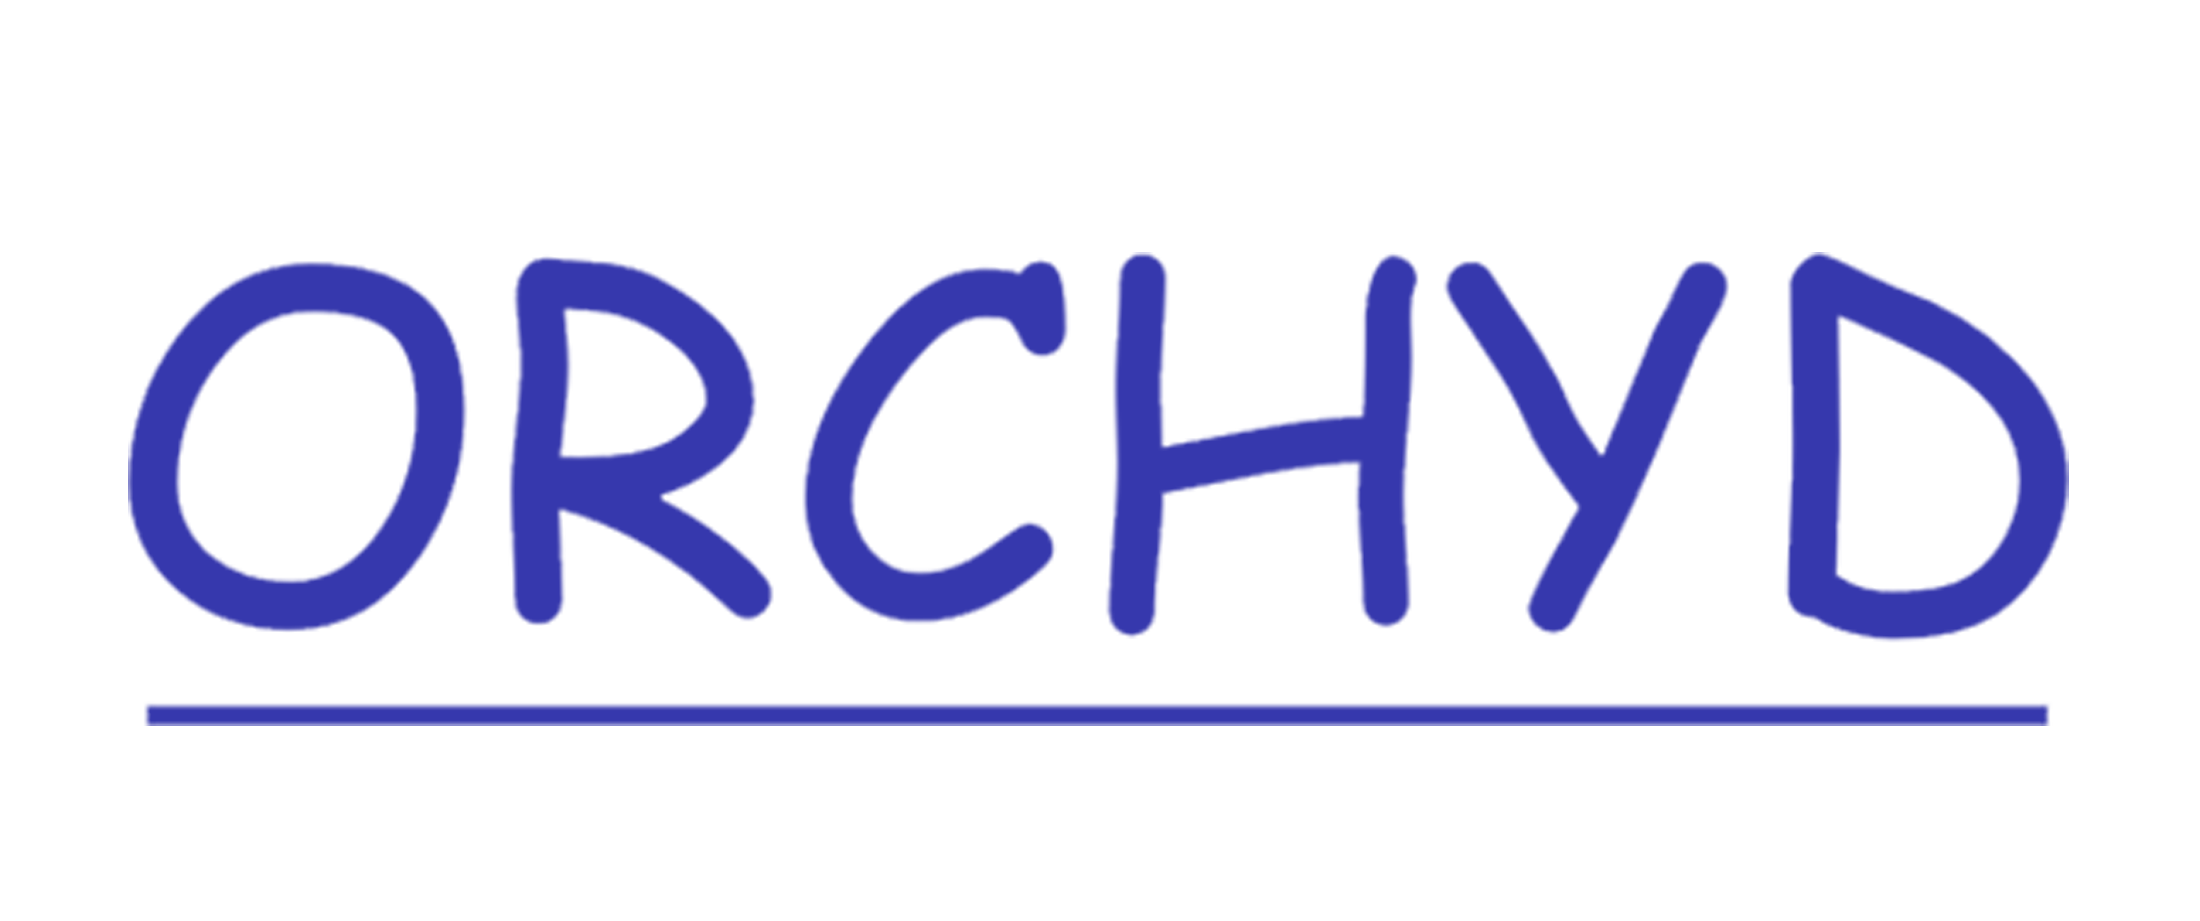 Orchy D.png